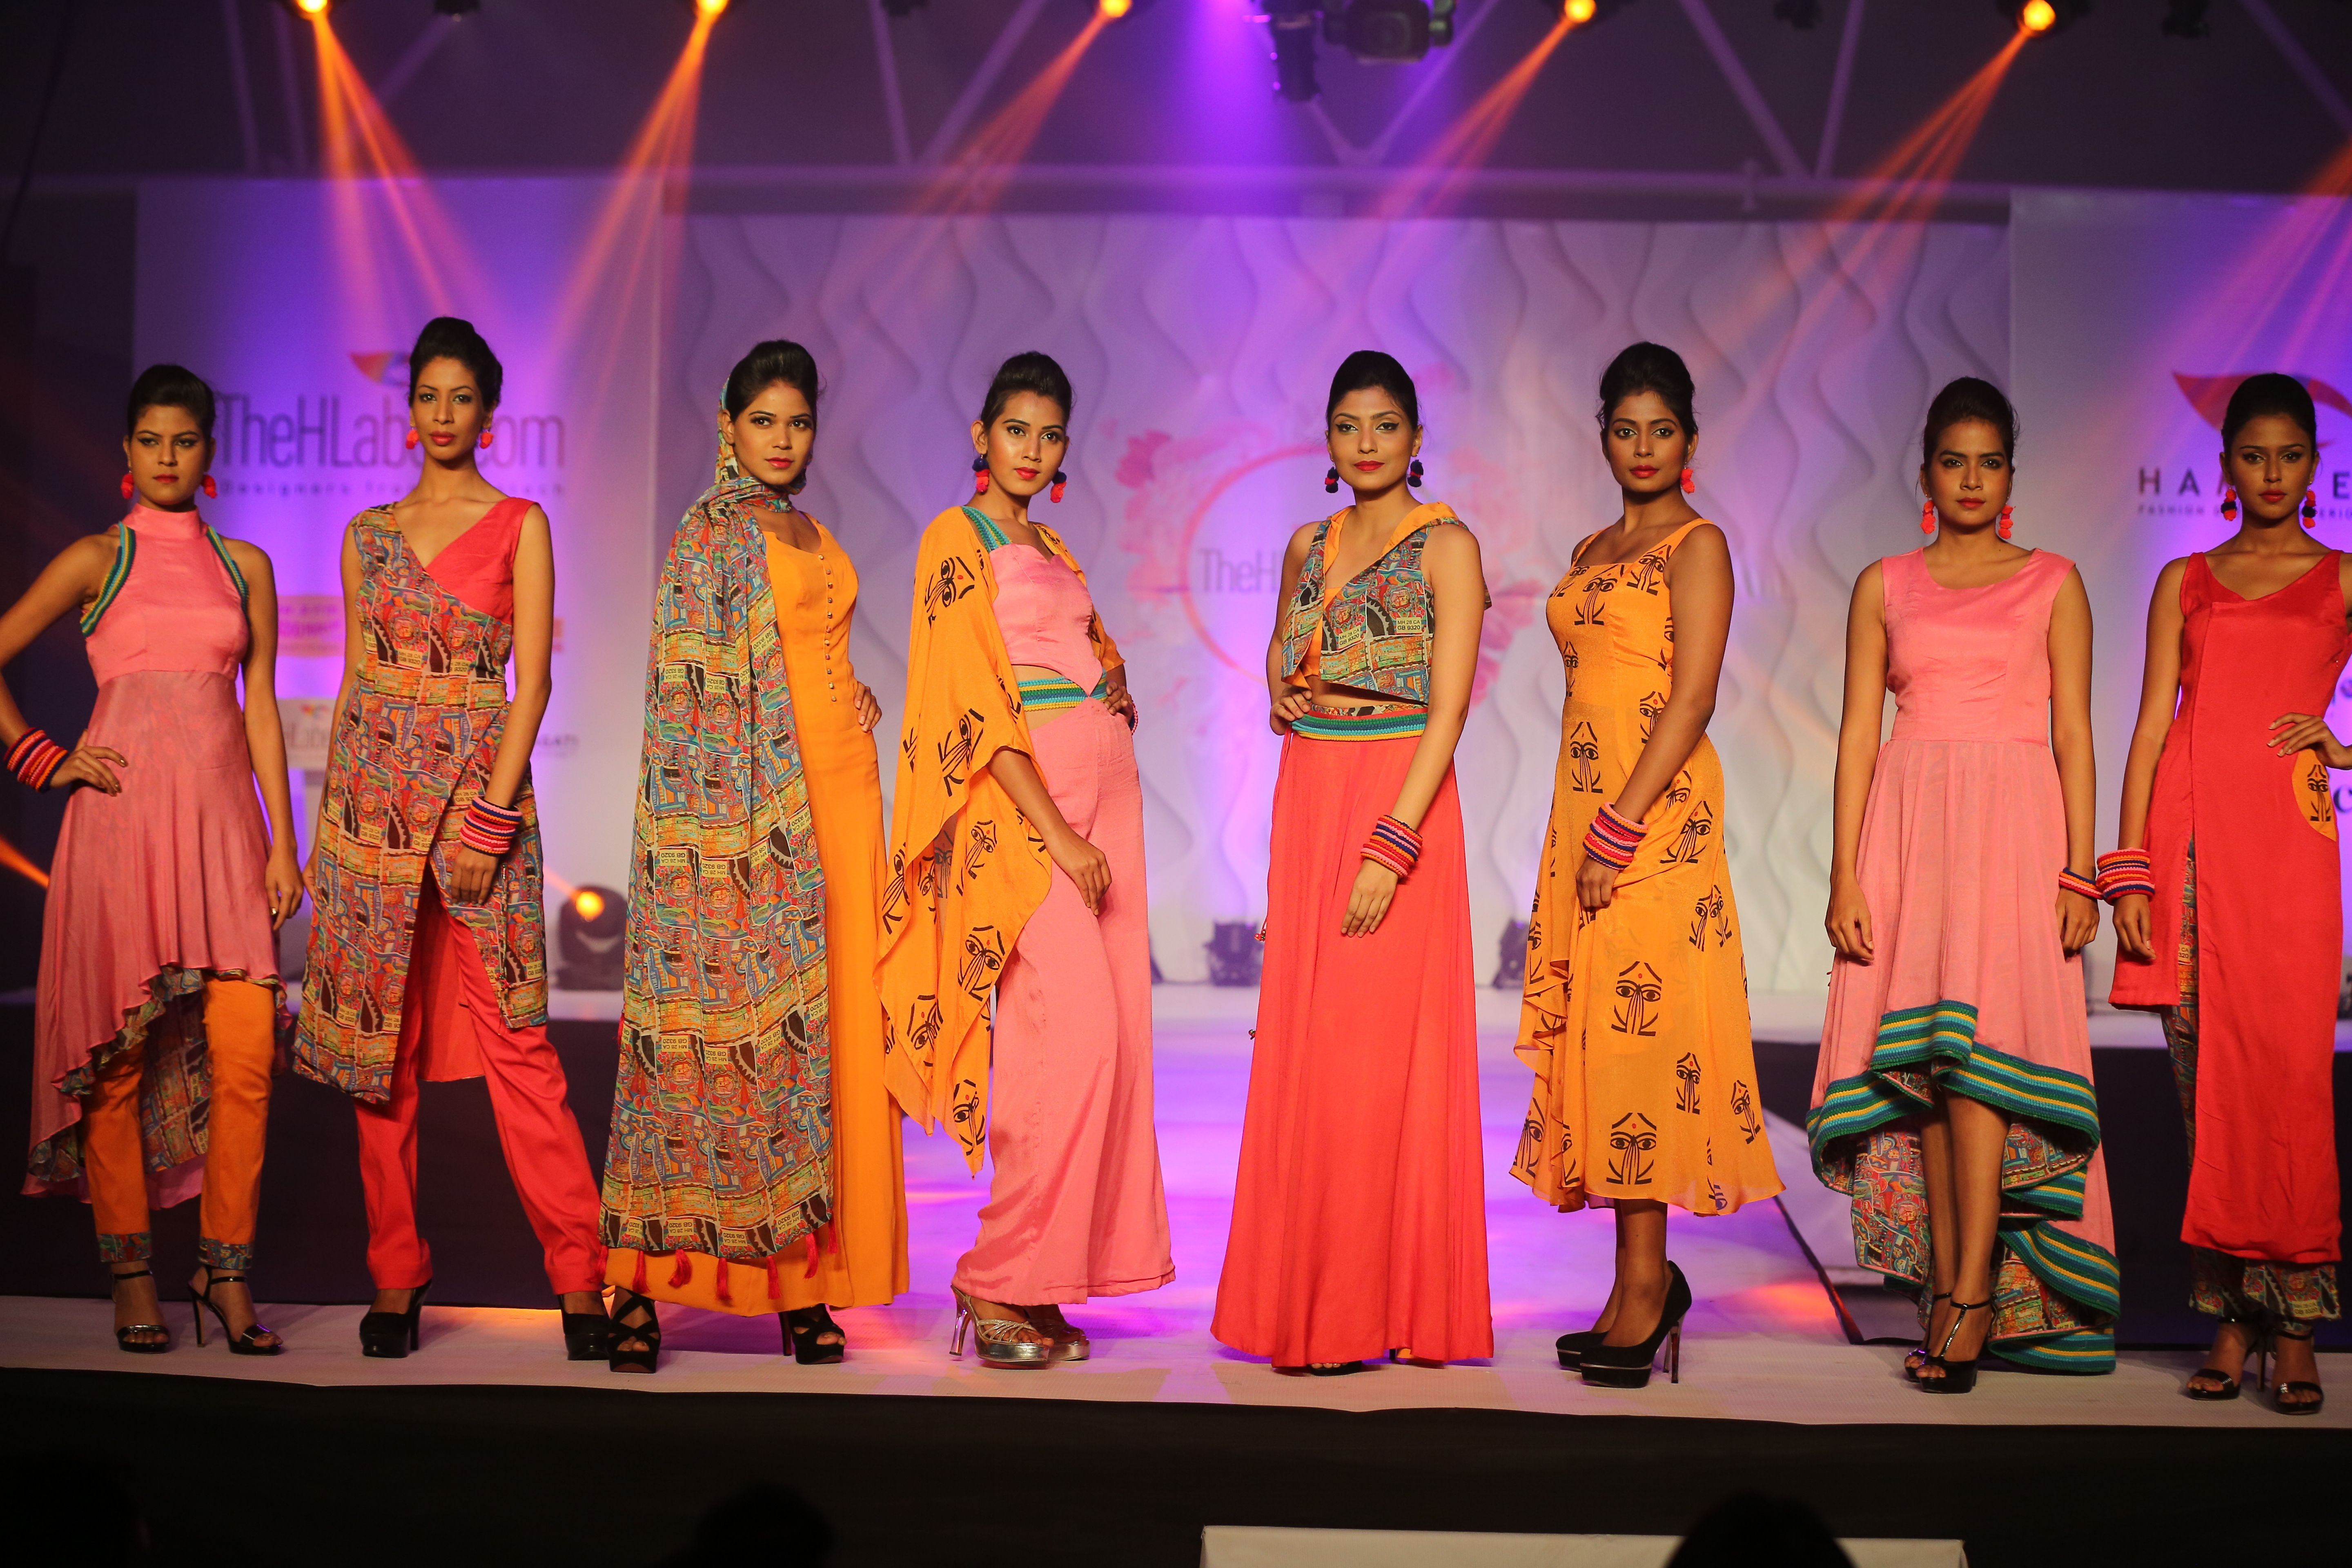 Hamstech Institute Of Fashion And Interior Design S Designers Showcased Their Collection Bharat Benz On The Ramp At The Hl Fashion College Design Sale Design